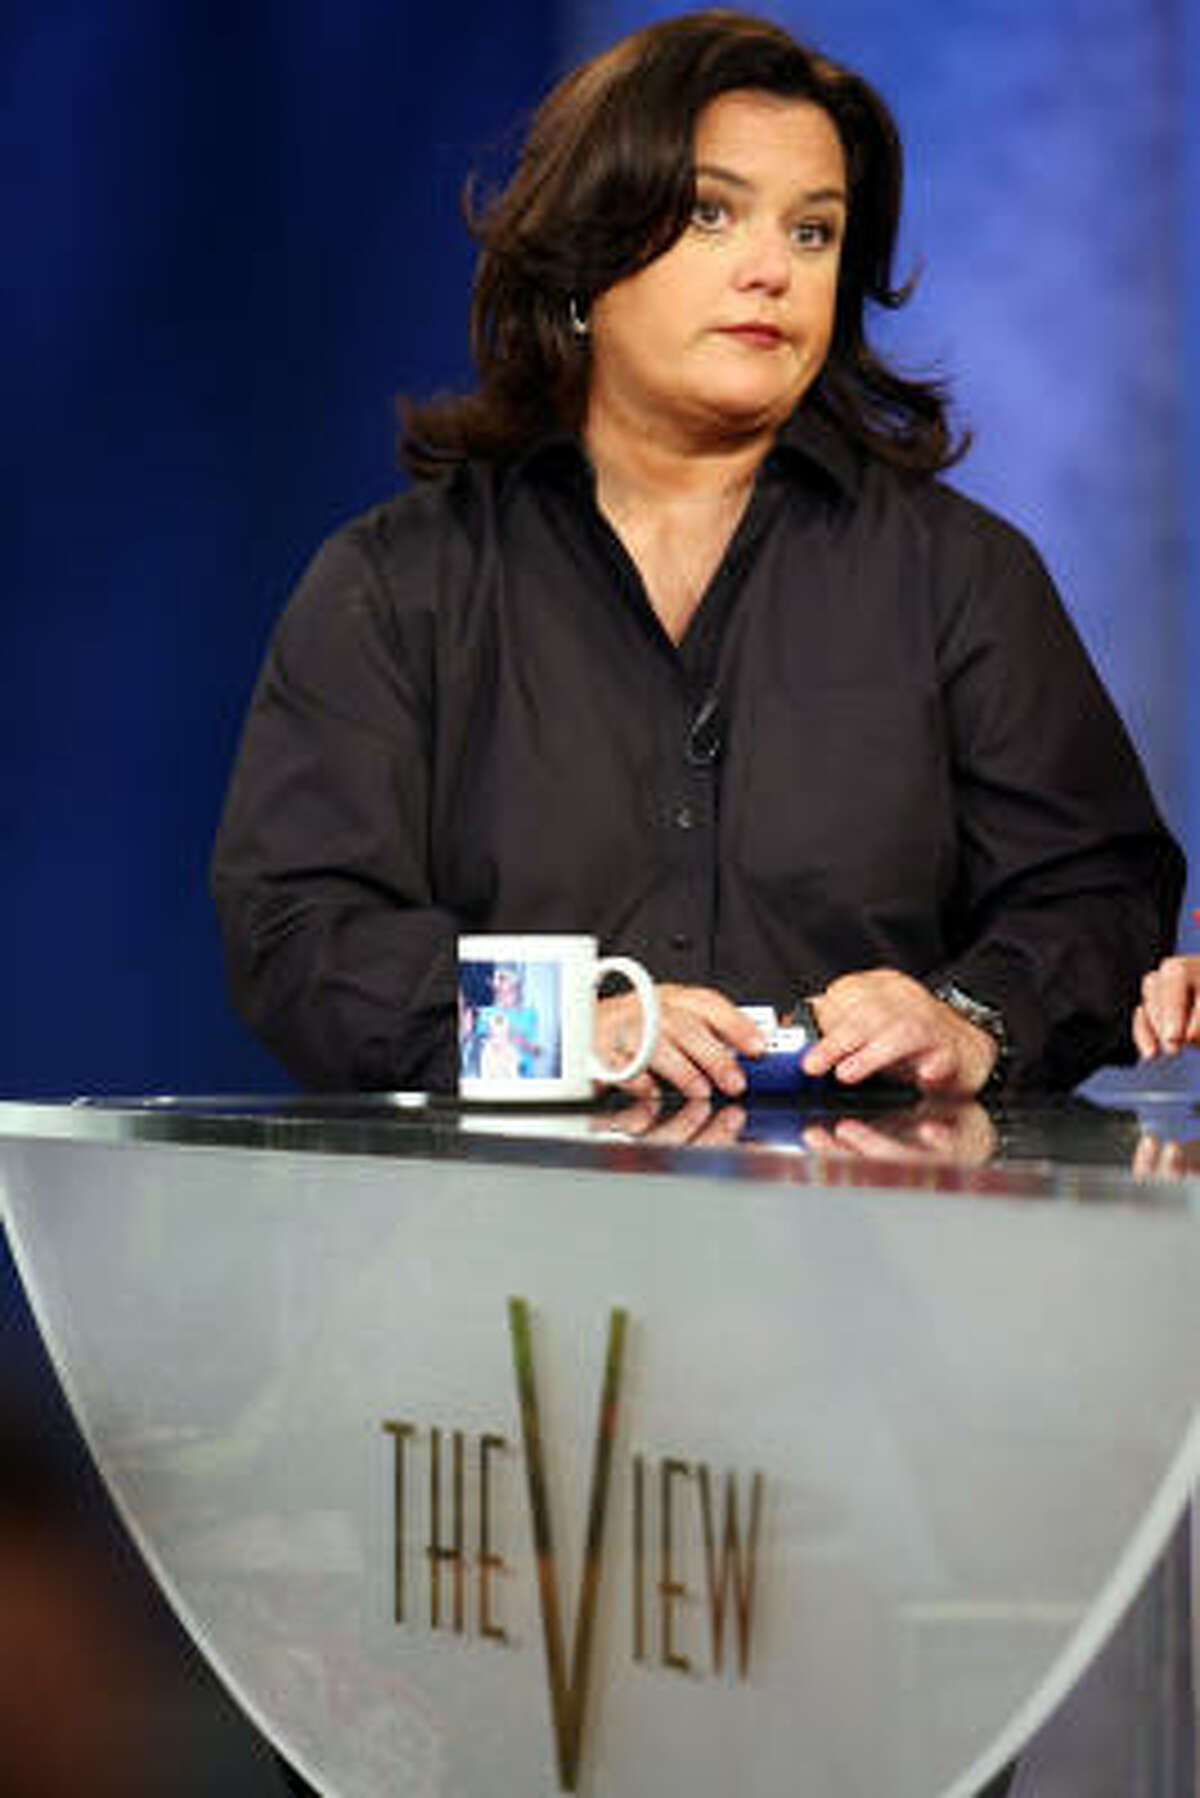 Rosie O'Donnell vs. the world. The queen of nice became fierce when it came to politics and the Iraq War. She and Elisabeth Hasselbeck went after each other. Shortly after she walked away from The View.